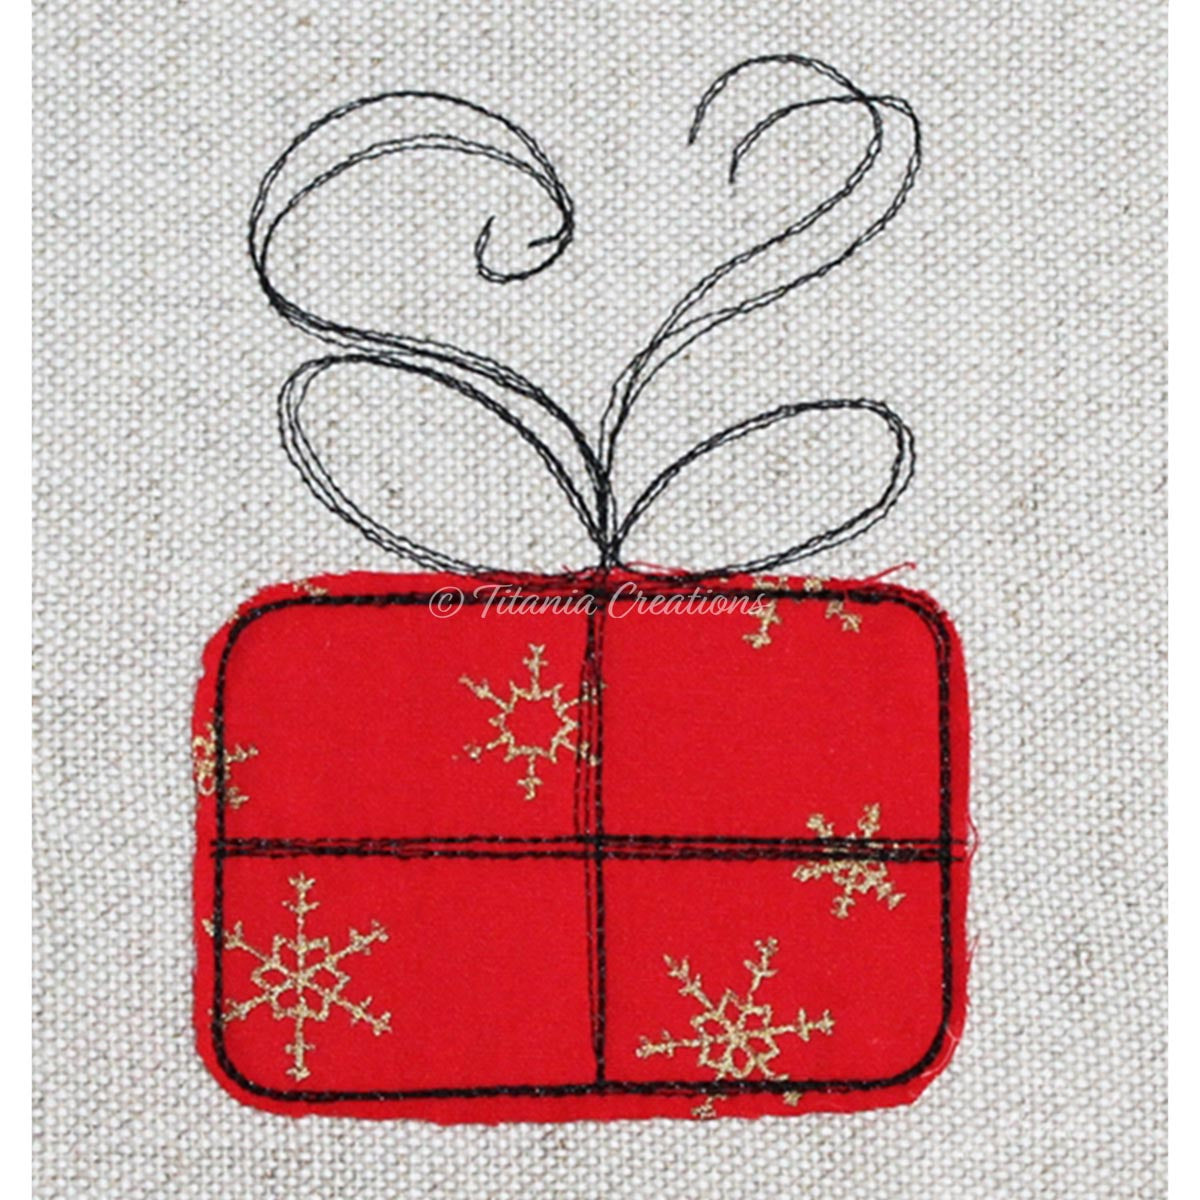 Raw Edge Applique Gift 4x4 5x7